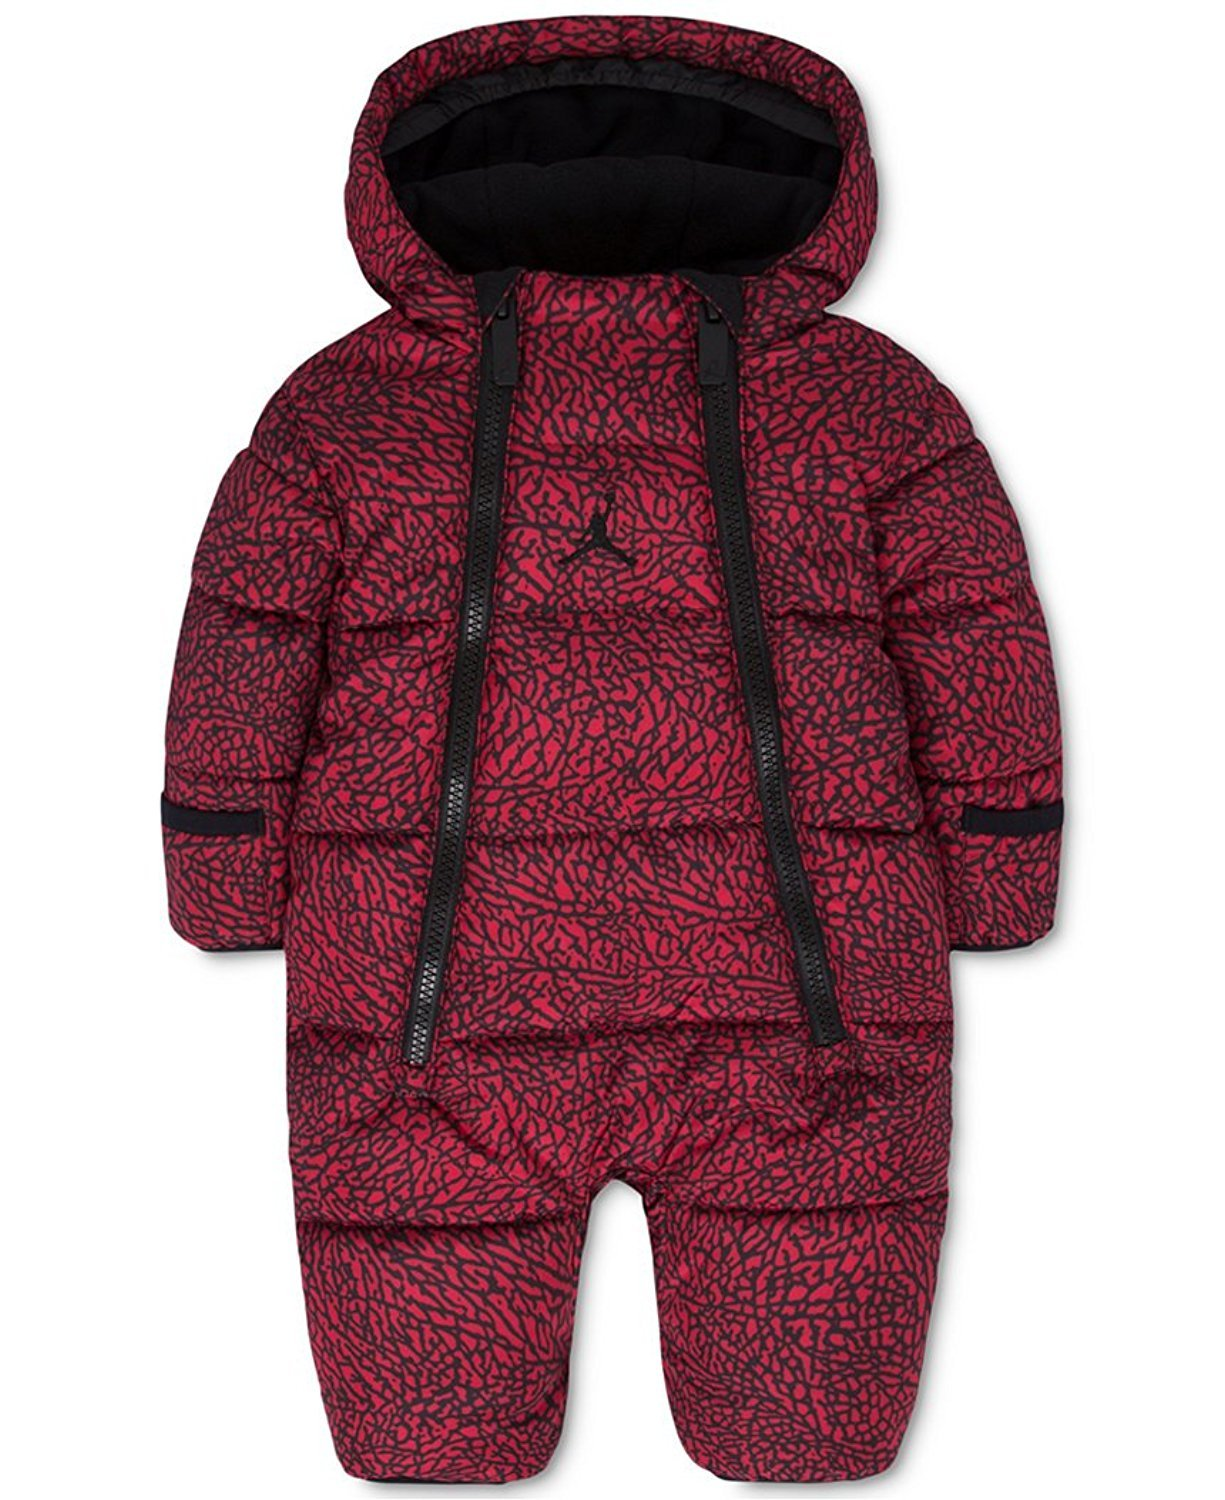 Jordan Baby Boys or Baby Girls Hooded Abstract-Print Snowsuit Bunting (0-3 Months, Gym Red (R78) / Black/Gym Red)